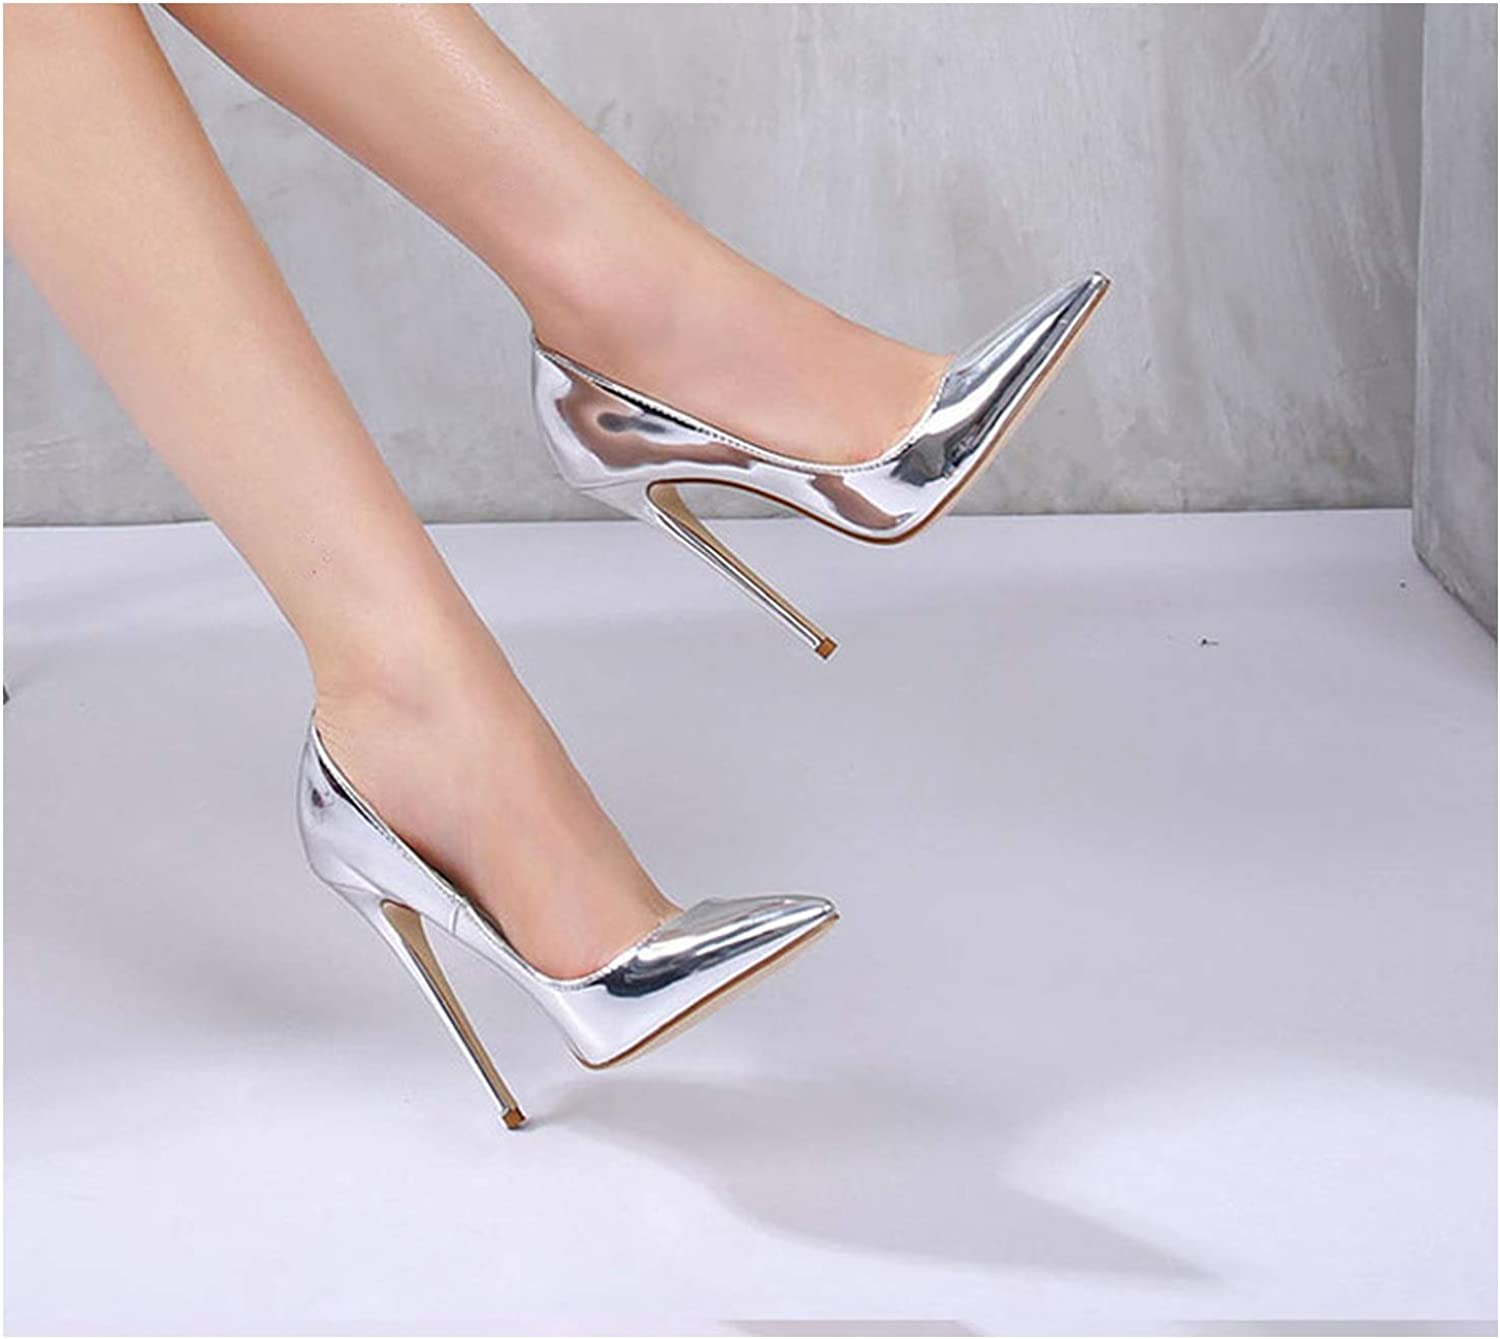 Women Pumps High Heels Silver Sexy High Heels shoes for Women Stilettos Wedding Party shoes,12cm,12